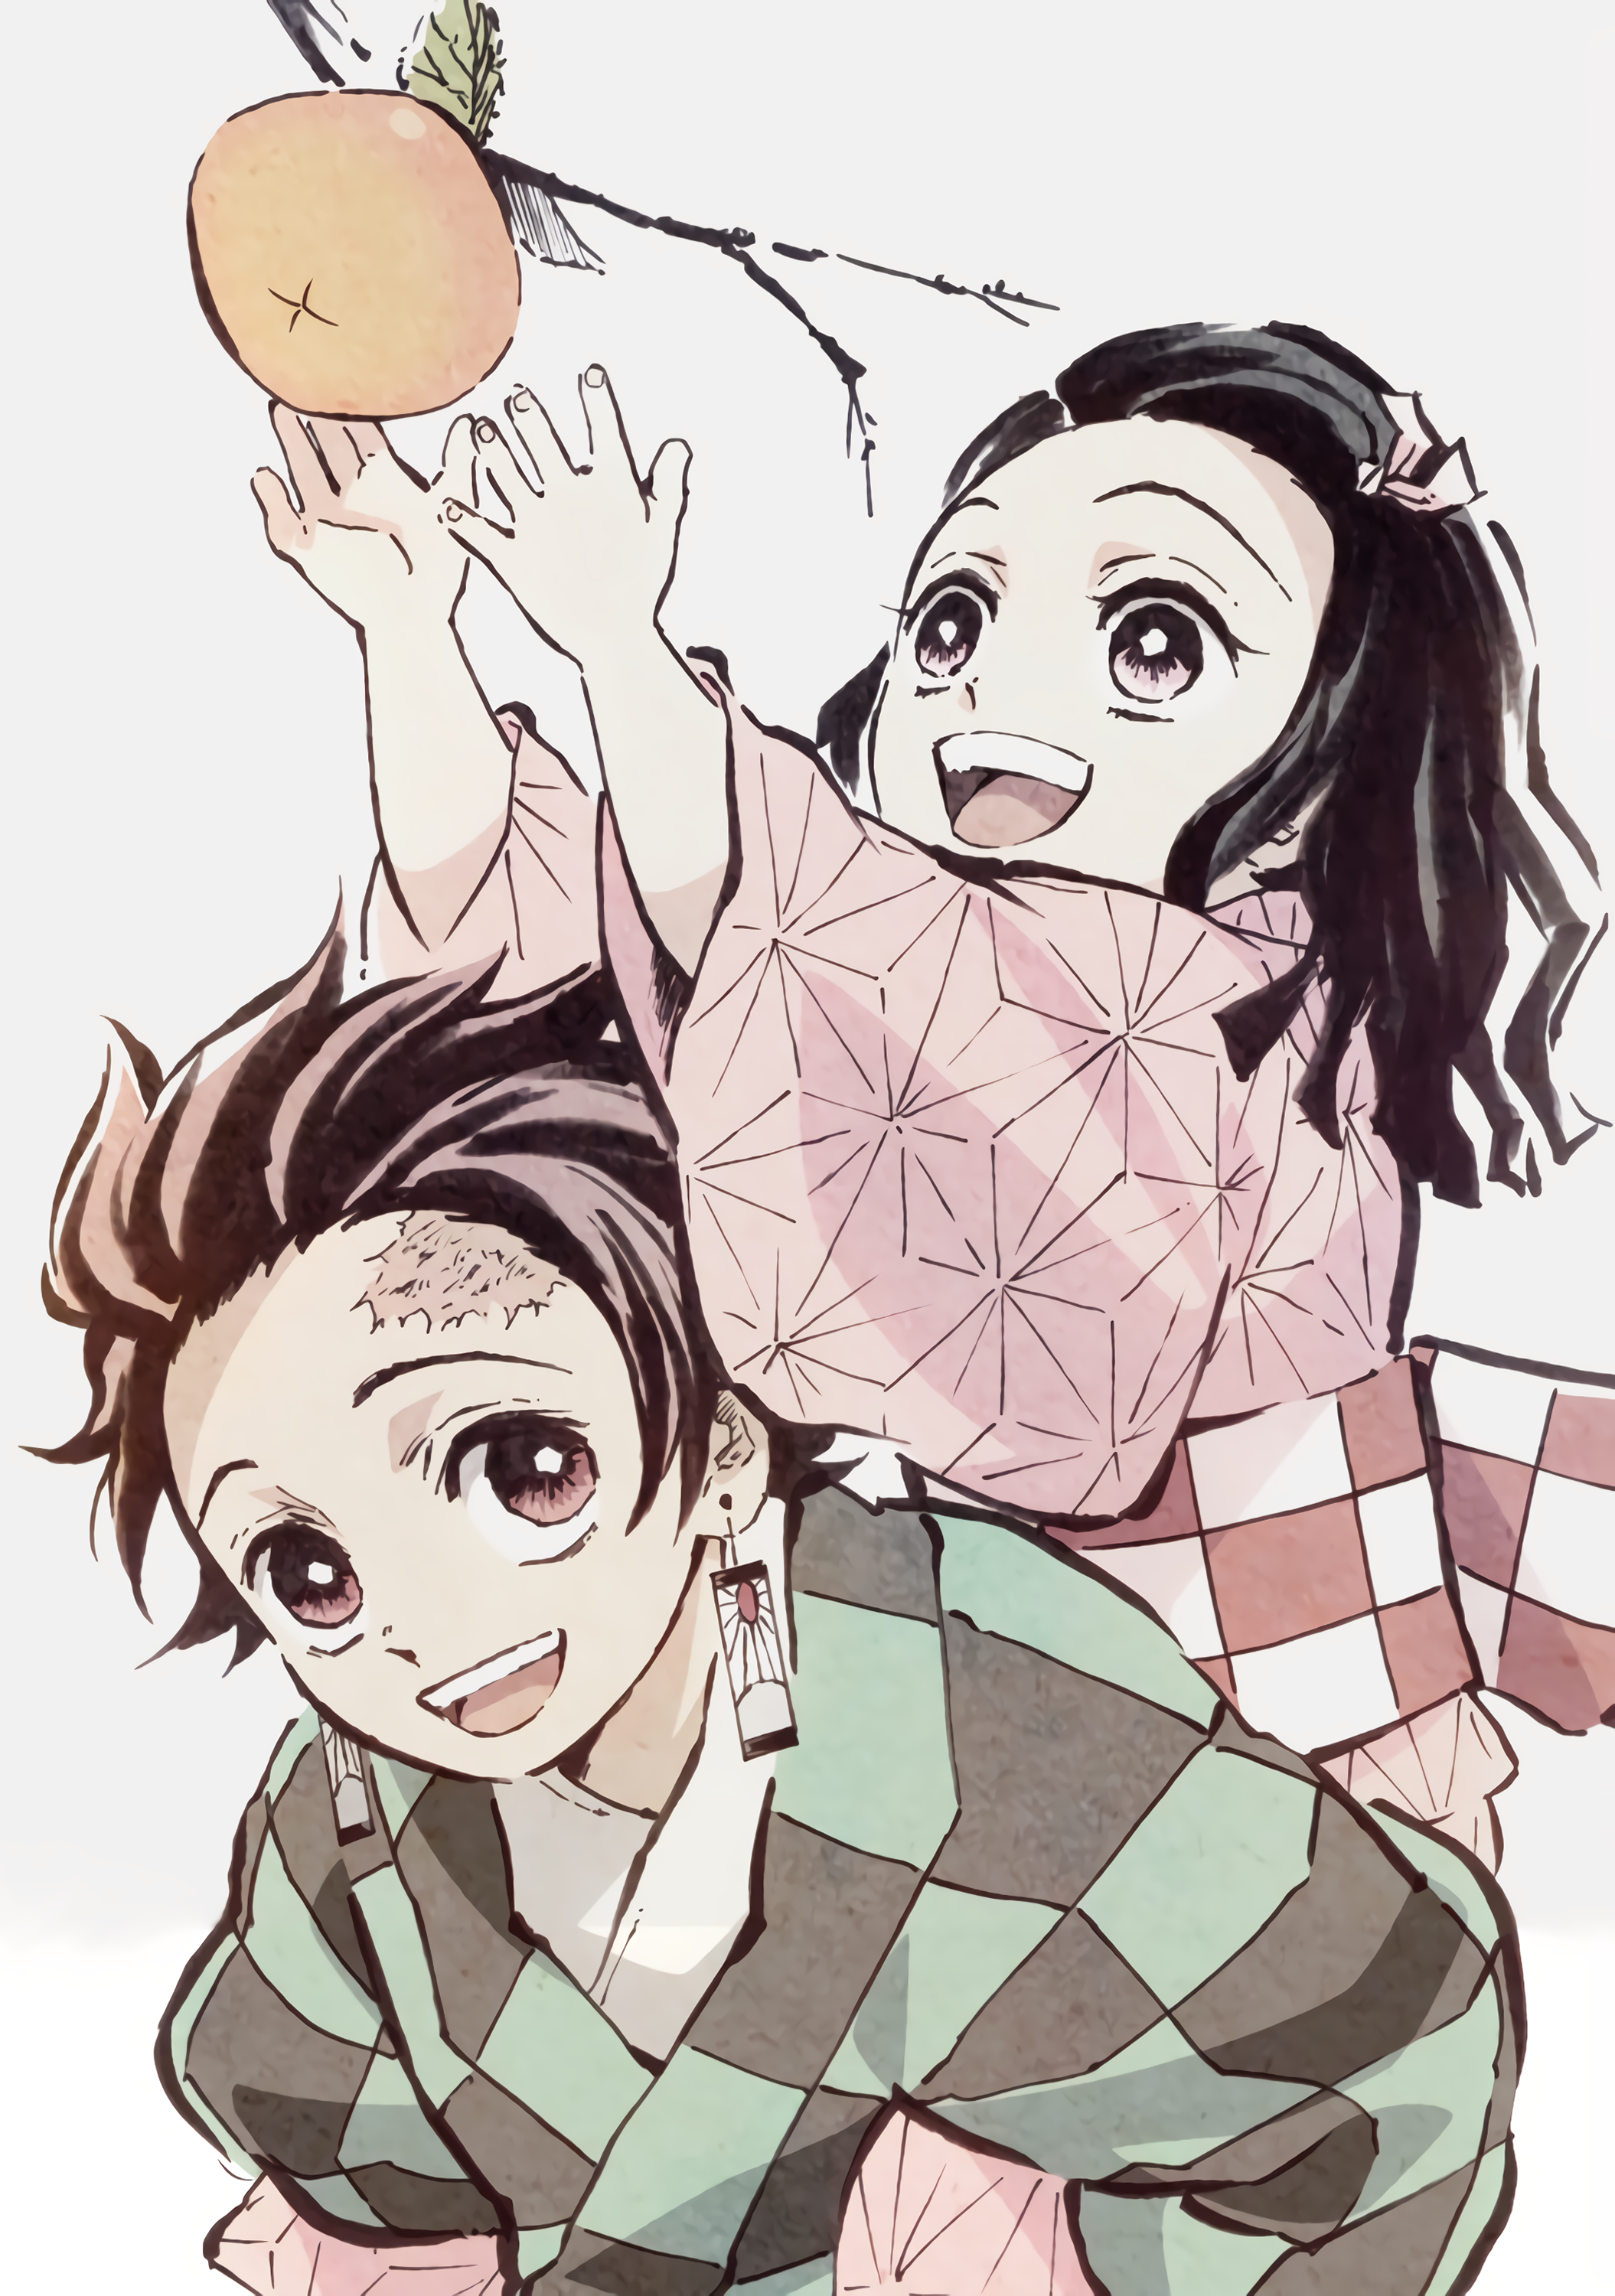 Tanjiro and Nezuko (Kimetsu no Yaiba) Small stitch